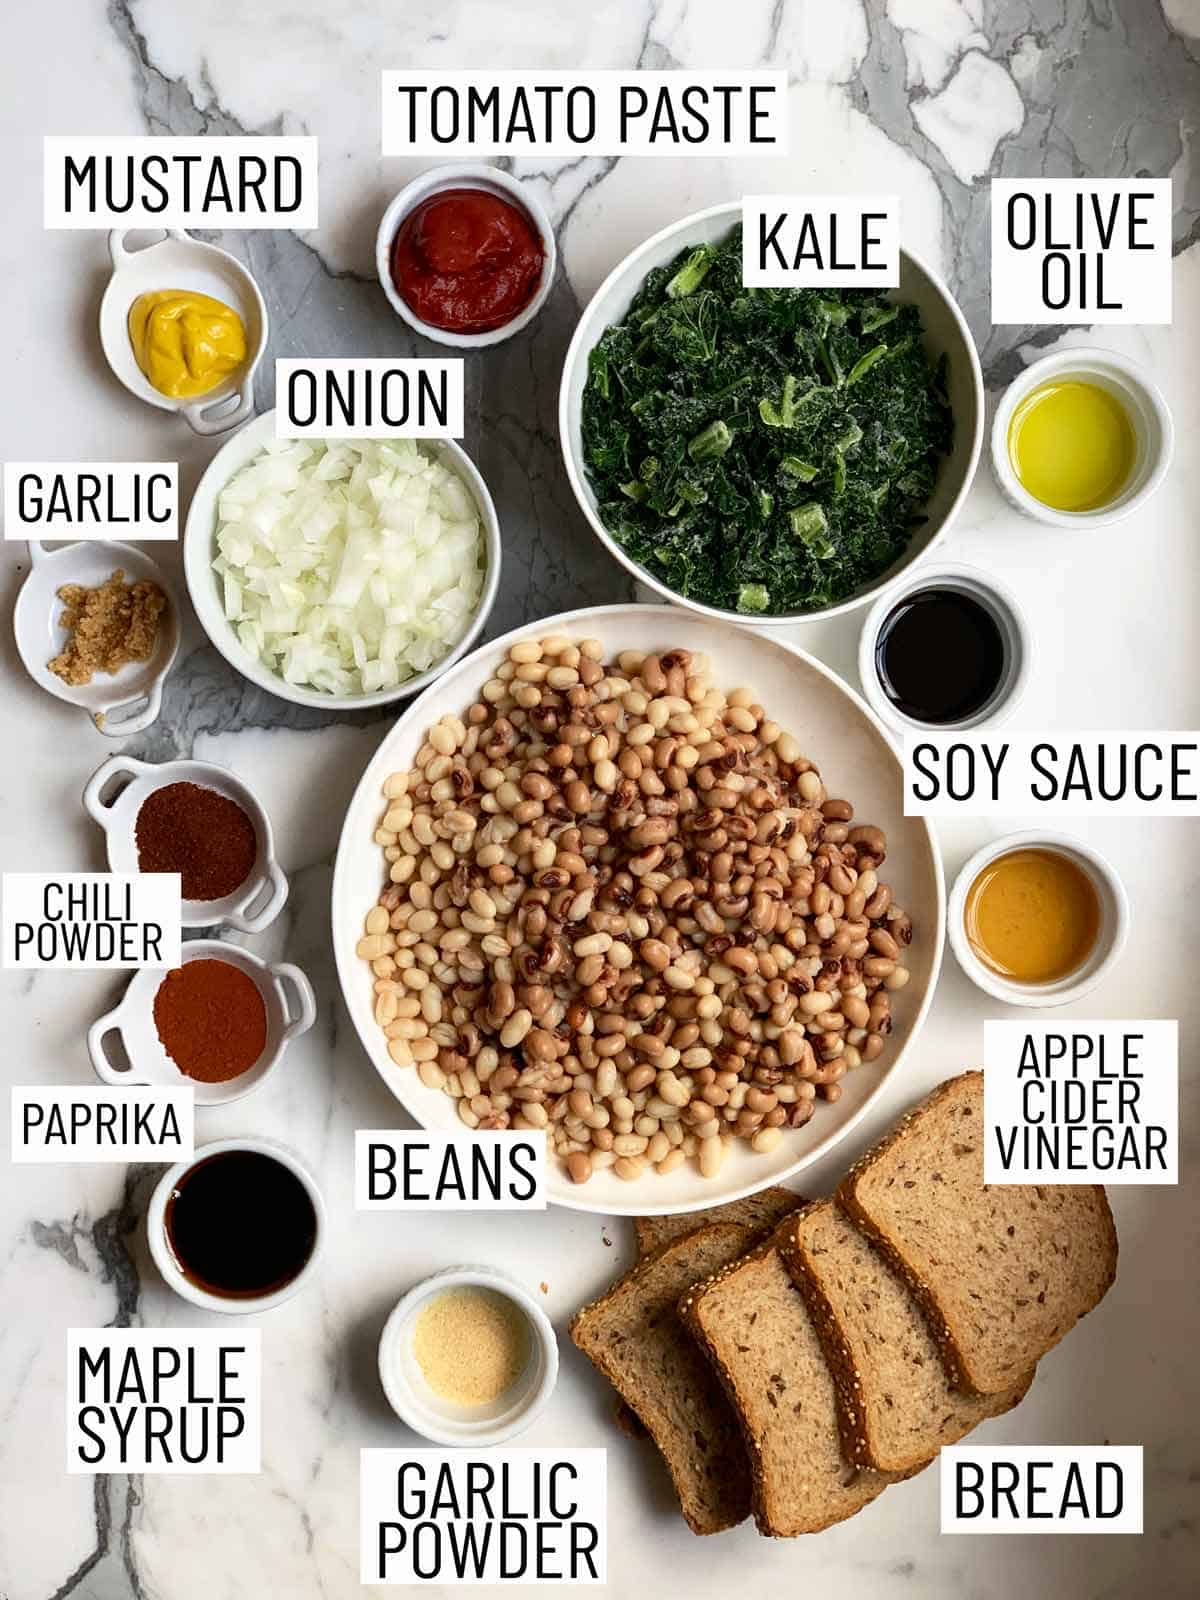 Overhead image of ingredients for beans on toast: mustard, tomato paste, olive oil, minced garlic, onion, chili powder, paprika, maple syrup, garlic powder, bread, apple cider vinegar, soy sauce, beans, and kale.